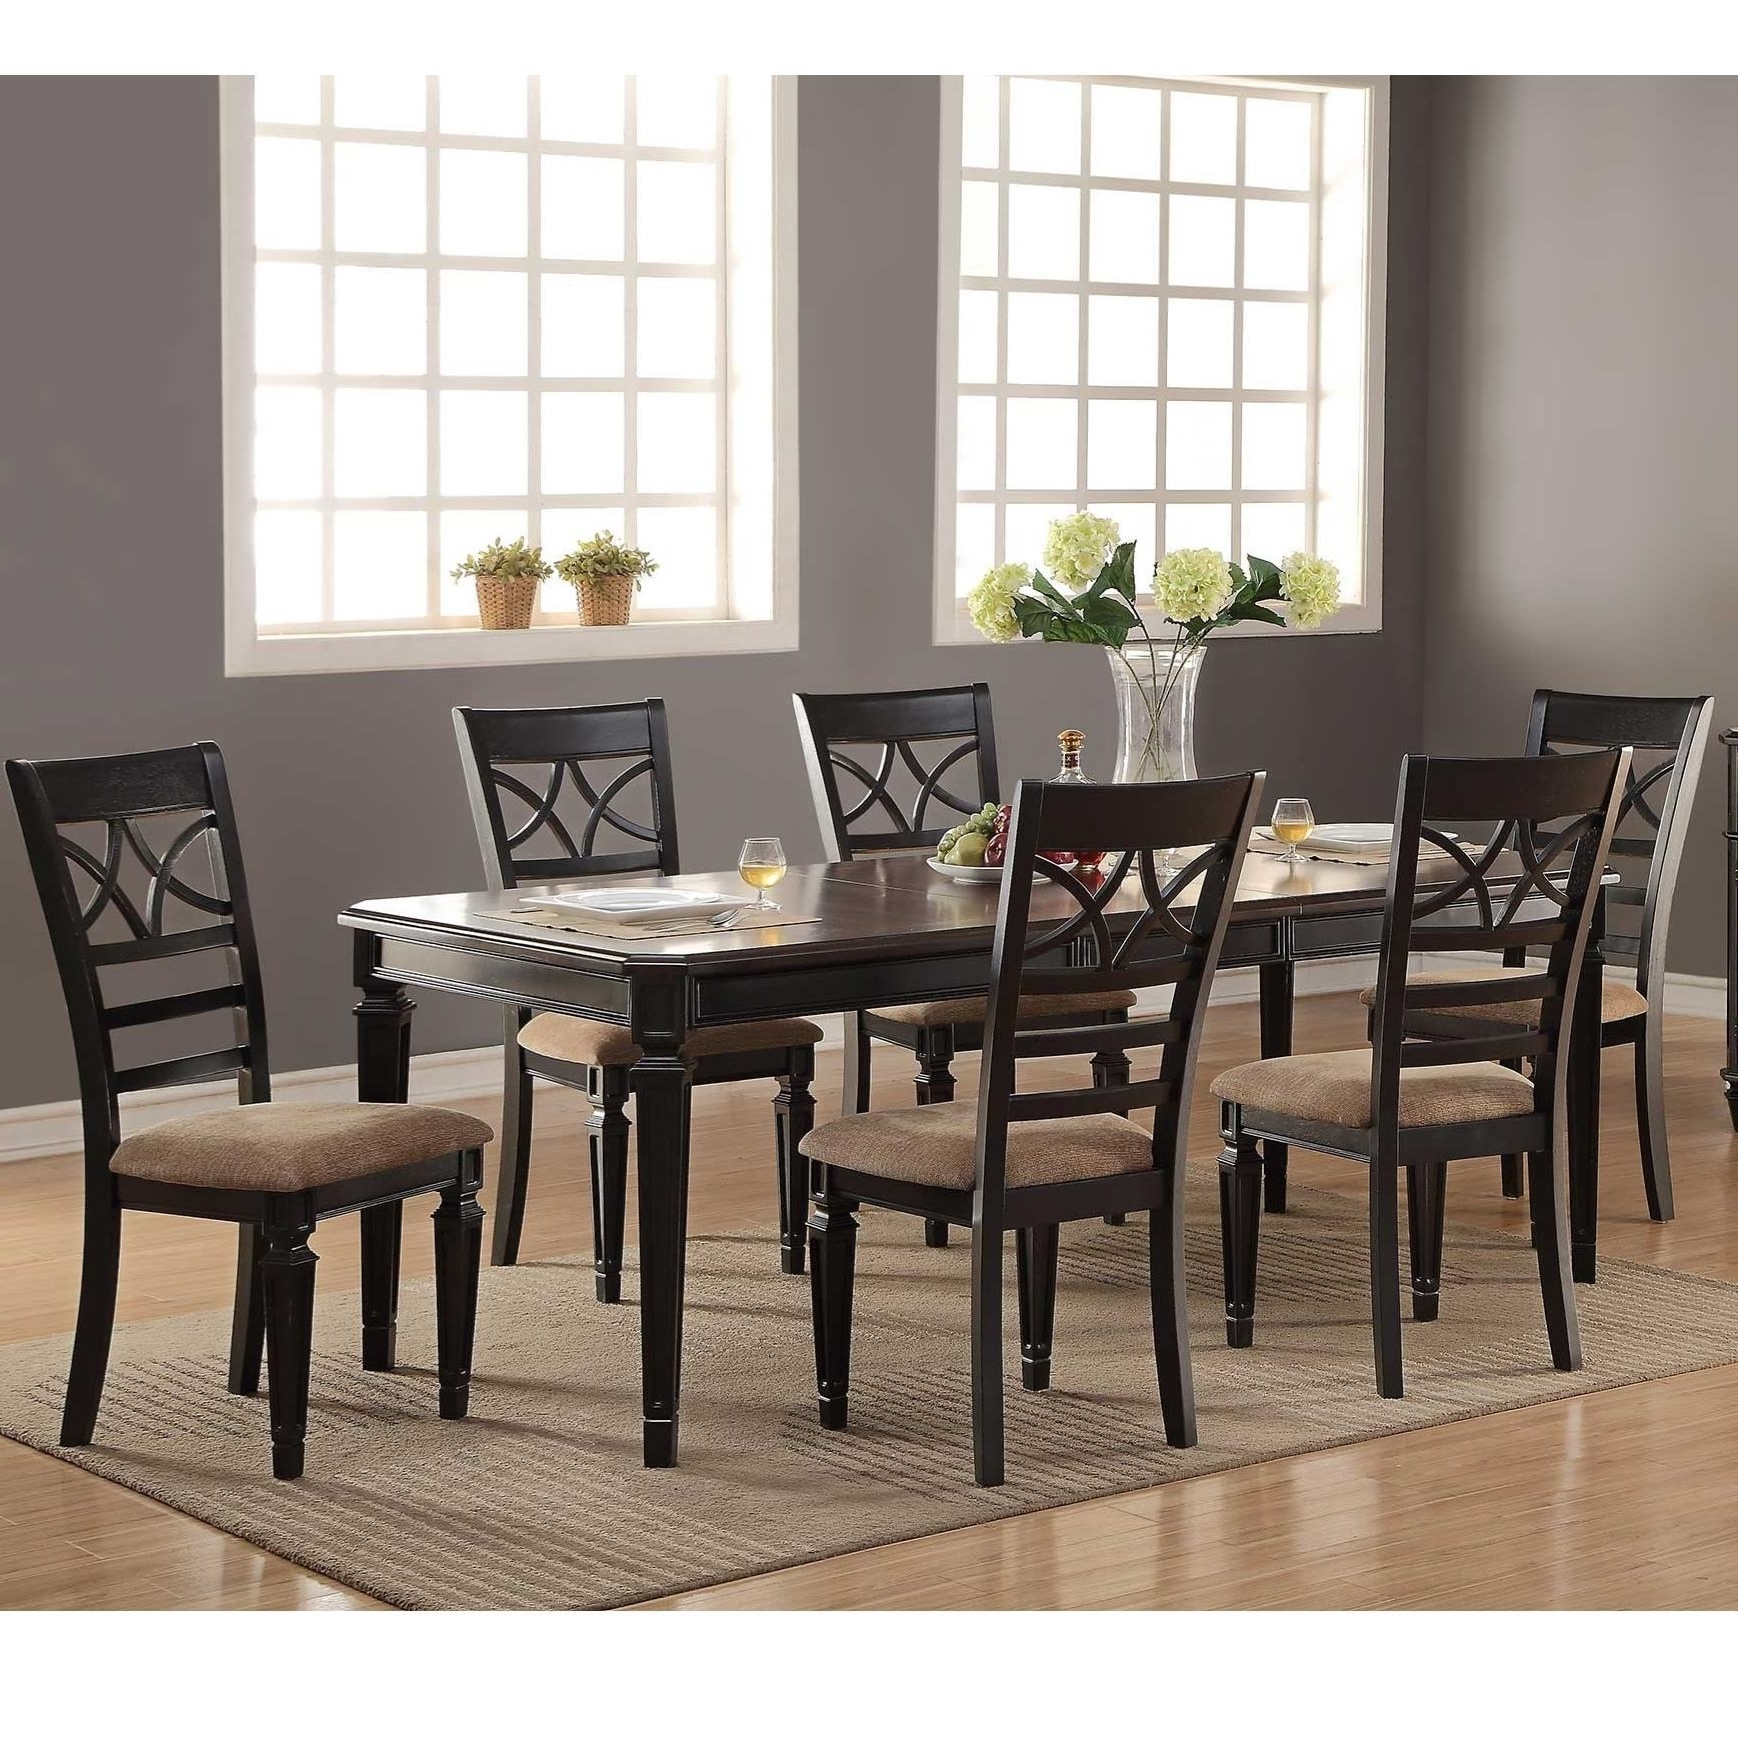 Most Current Winners Only Arlington 7 Piece Dining Set With X Back Chairs In Parquet 7 Piece Dining Sets (Gallery 7 of 25)